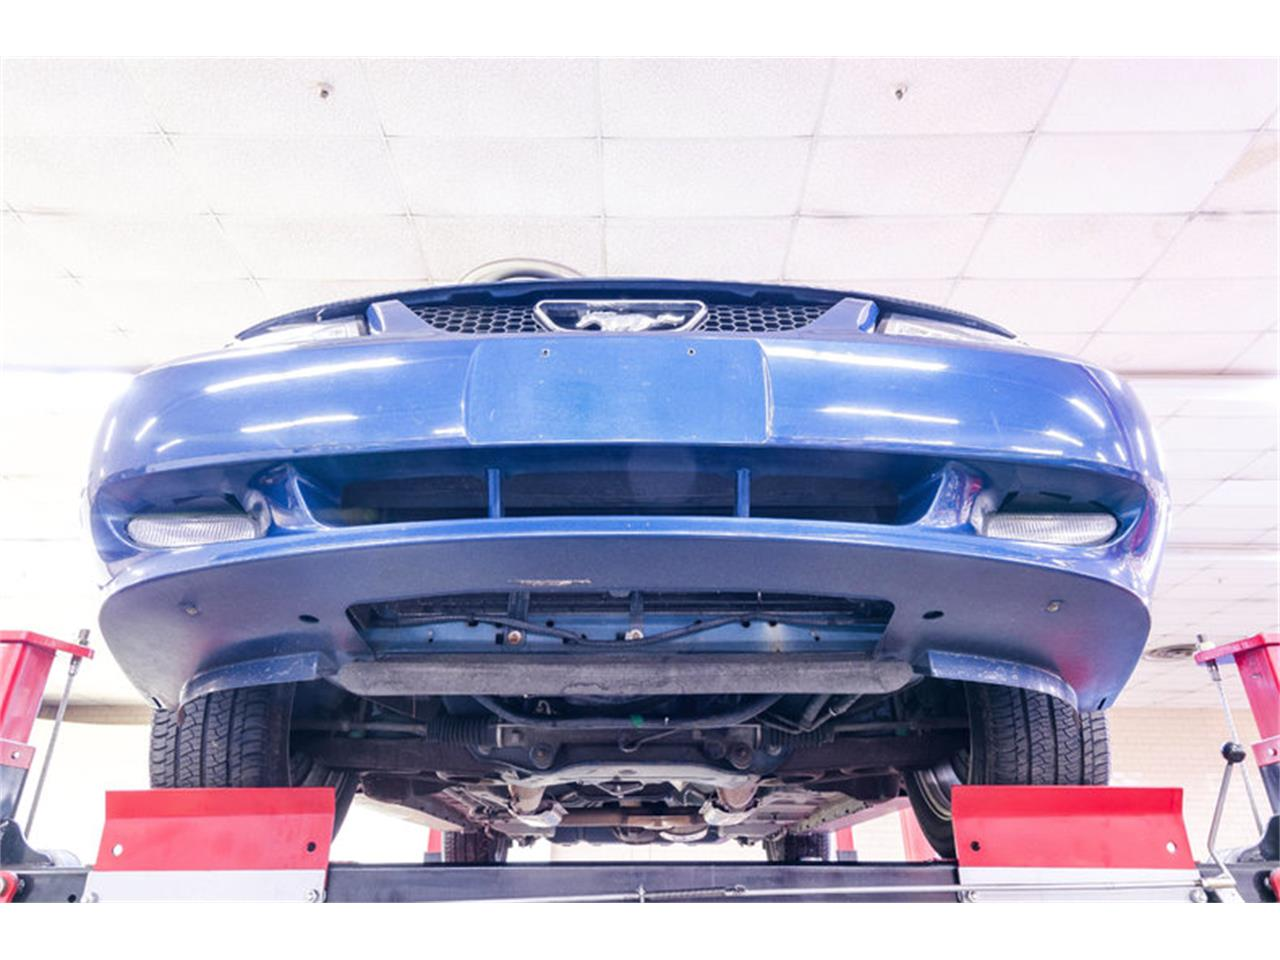 Large Picture of '00 Ford Mustang located in North Carolina - $7,995.00 - LB01